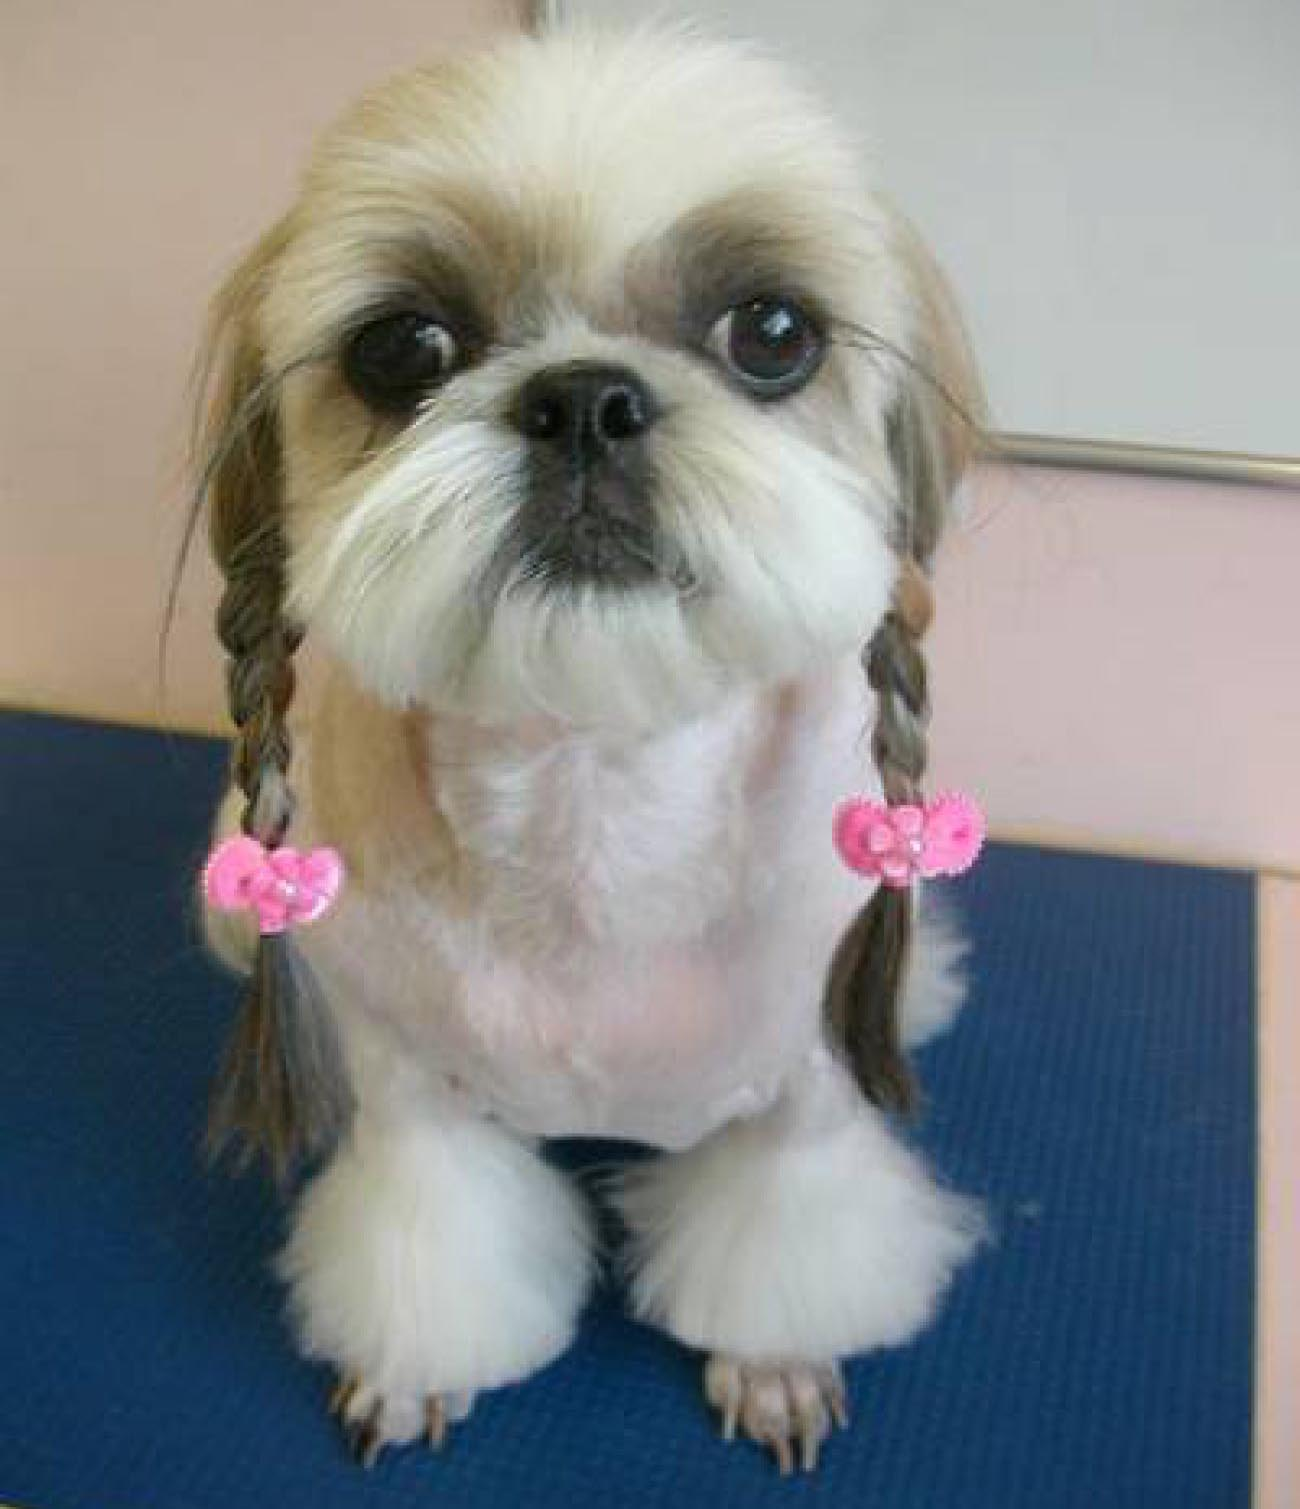 Amazing Hair Bows Bow Adorable Dog - Dog-with-Pigtails  Trends_24387  .jpg